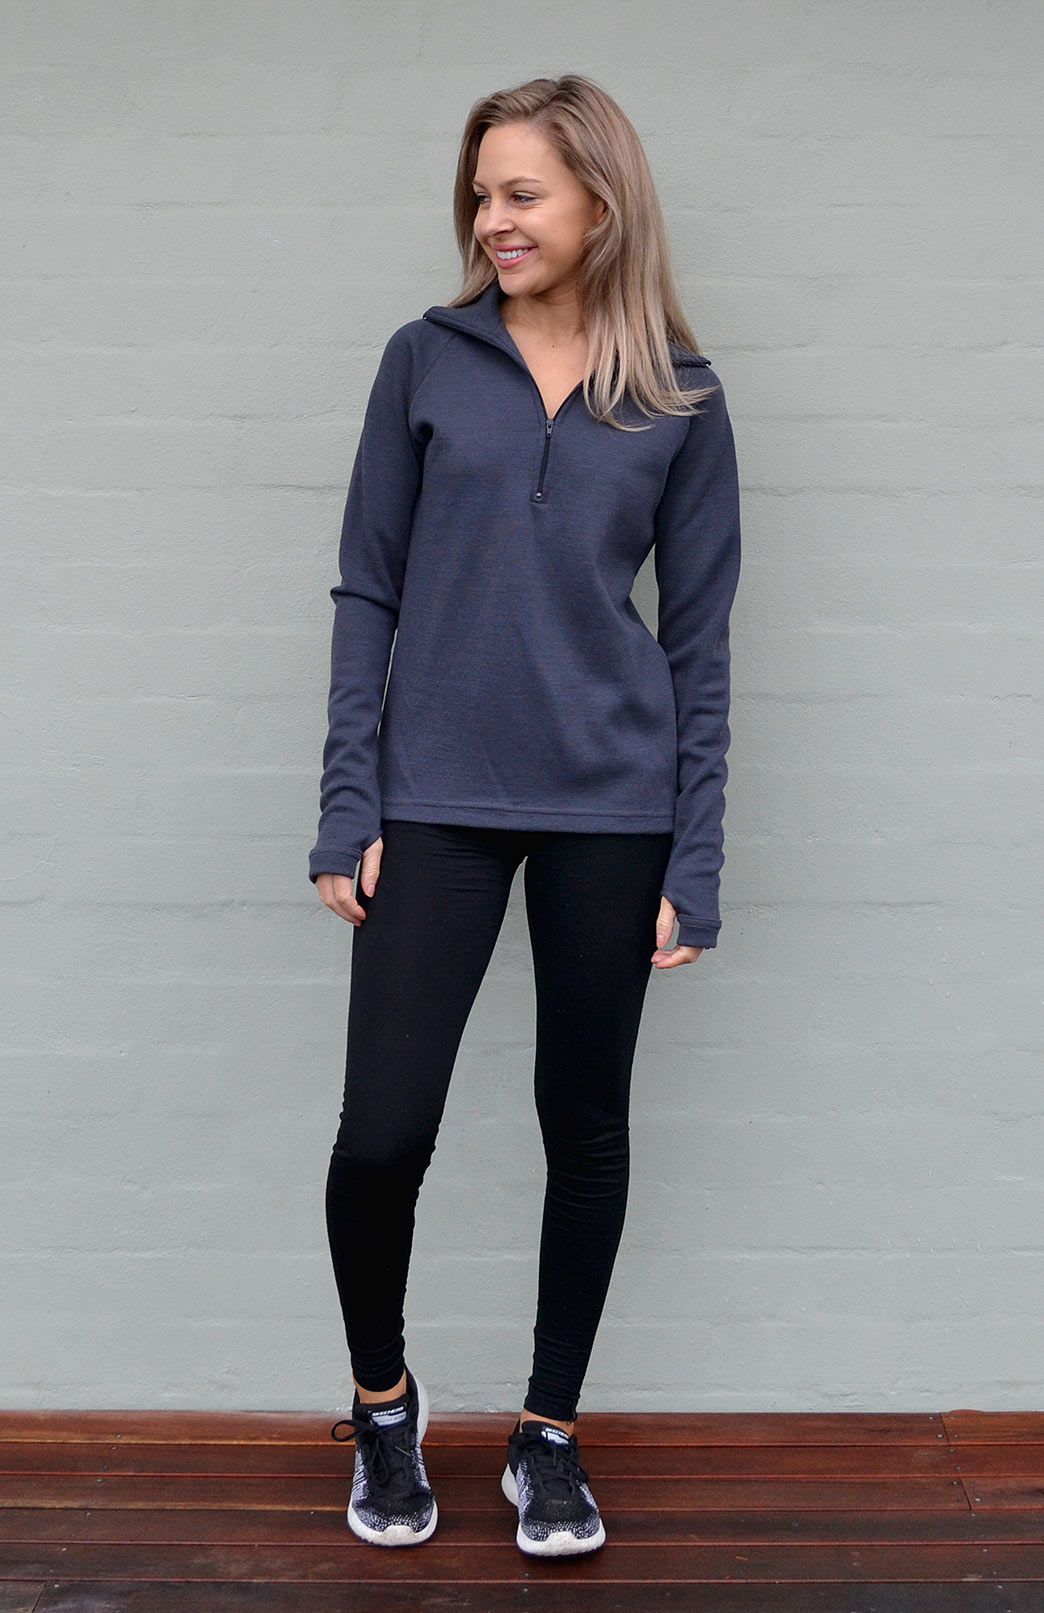 Zip Neck Top - Heavyweight (360g) - Women's Merino Wool Steel Grey Heavyweight Zip Neck Pullover Style Thermal Top - Smitten Merino Tasmania Australia